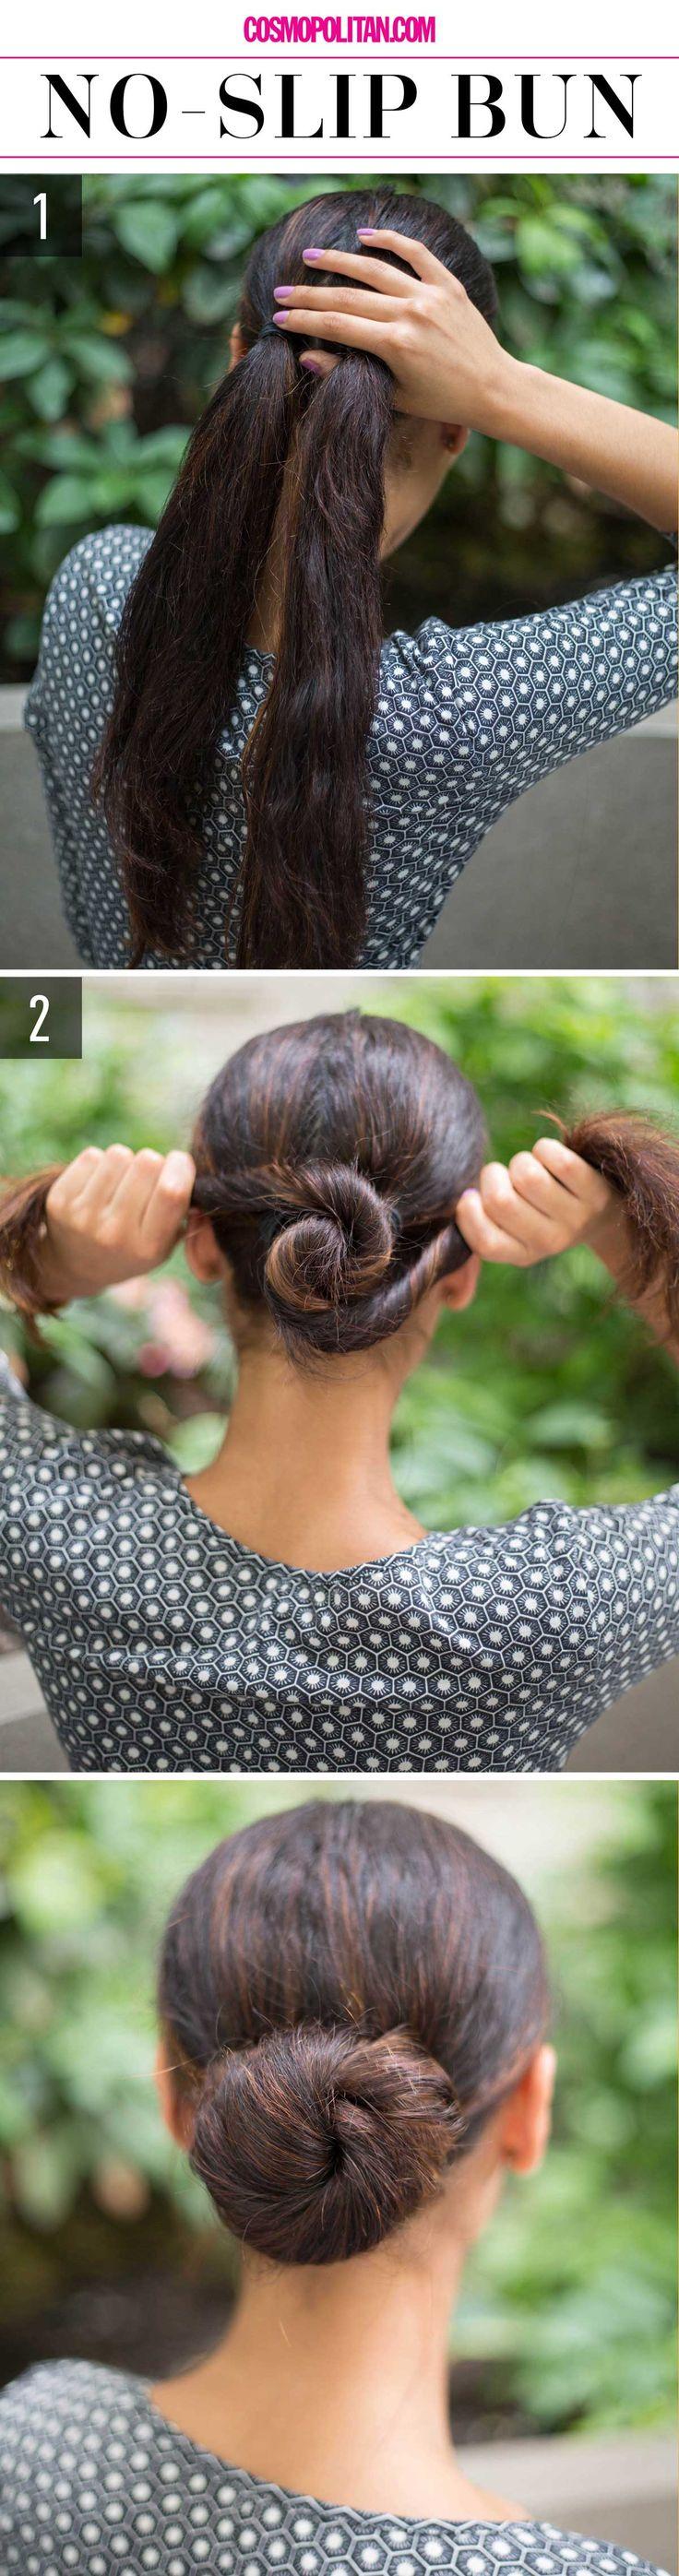 NO SLIP BUN: Buns look polished and chic, but not when they're falling apart half-way through the day. Create a pretty and secure bun with these easy steps! Start by pulling hair back in two low ponytails tied close together. Twist the two tails in opposite directions until a bun is formed and secure hair with bobby pins. Find the full tips and instructions here!